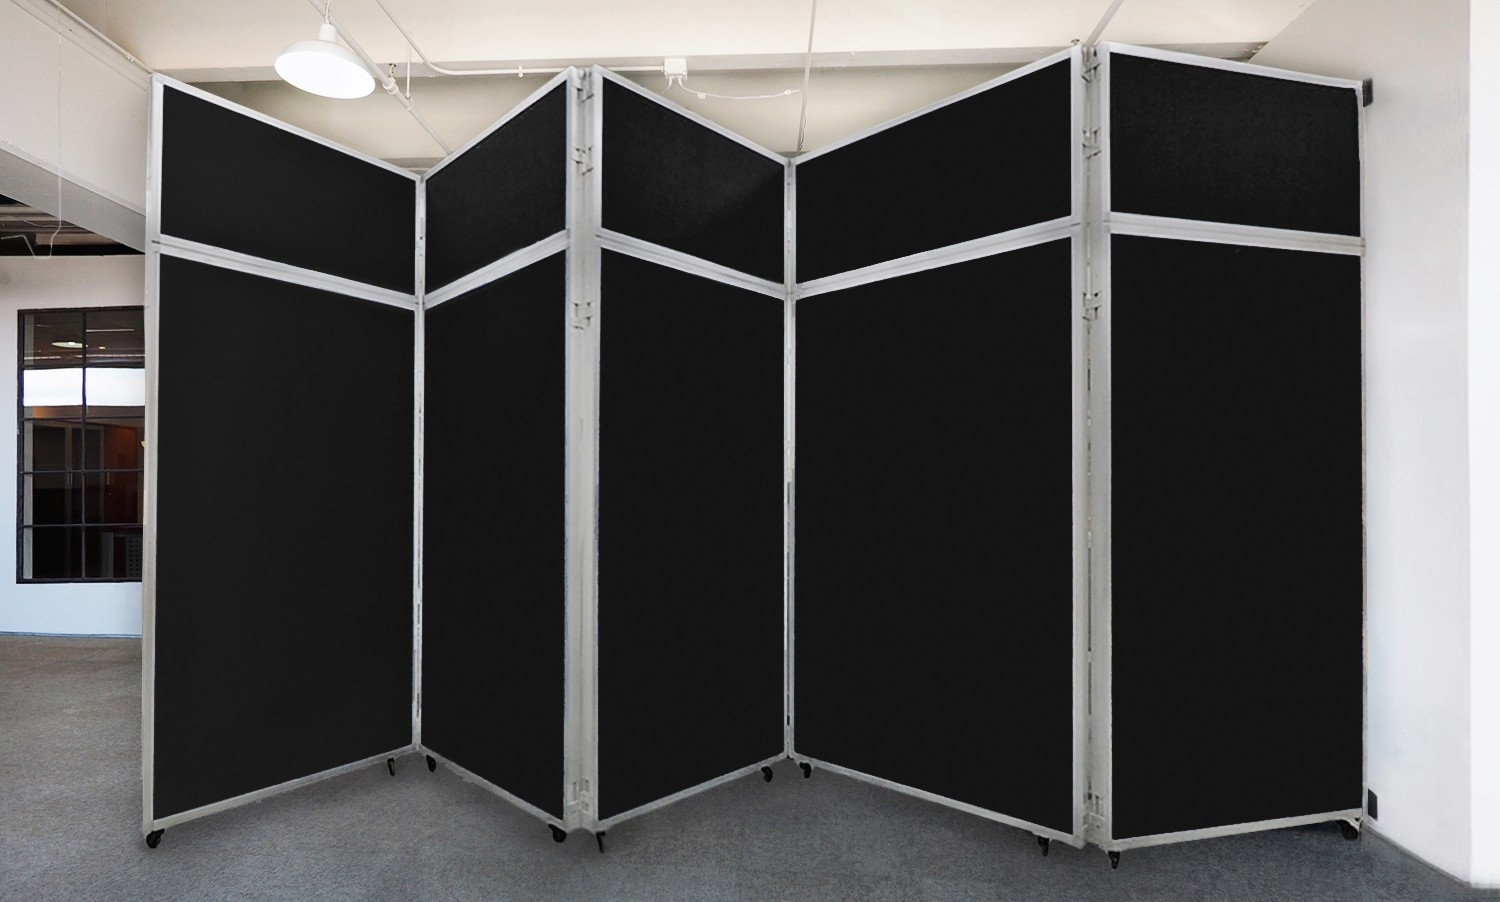 Versare operable wall large room dividers reach new heights for The room partition